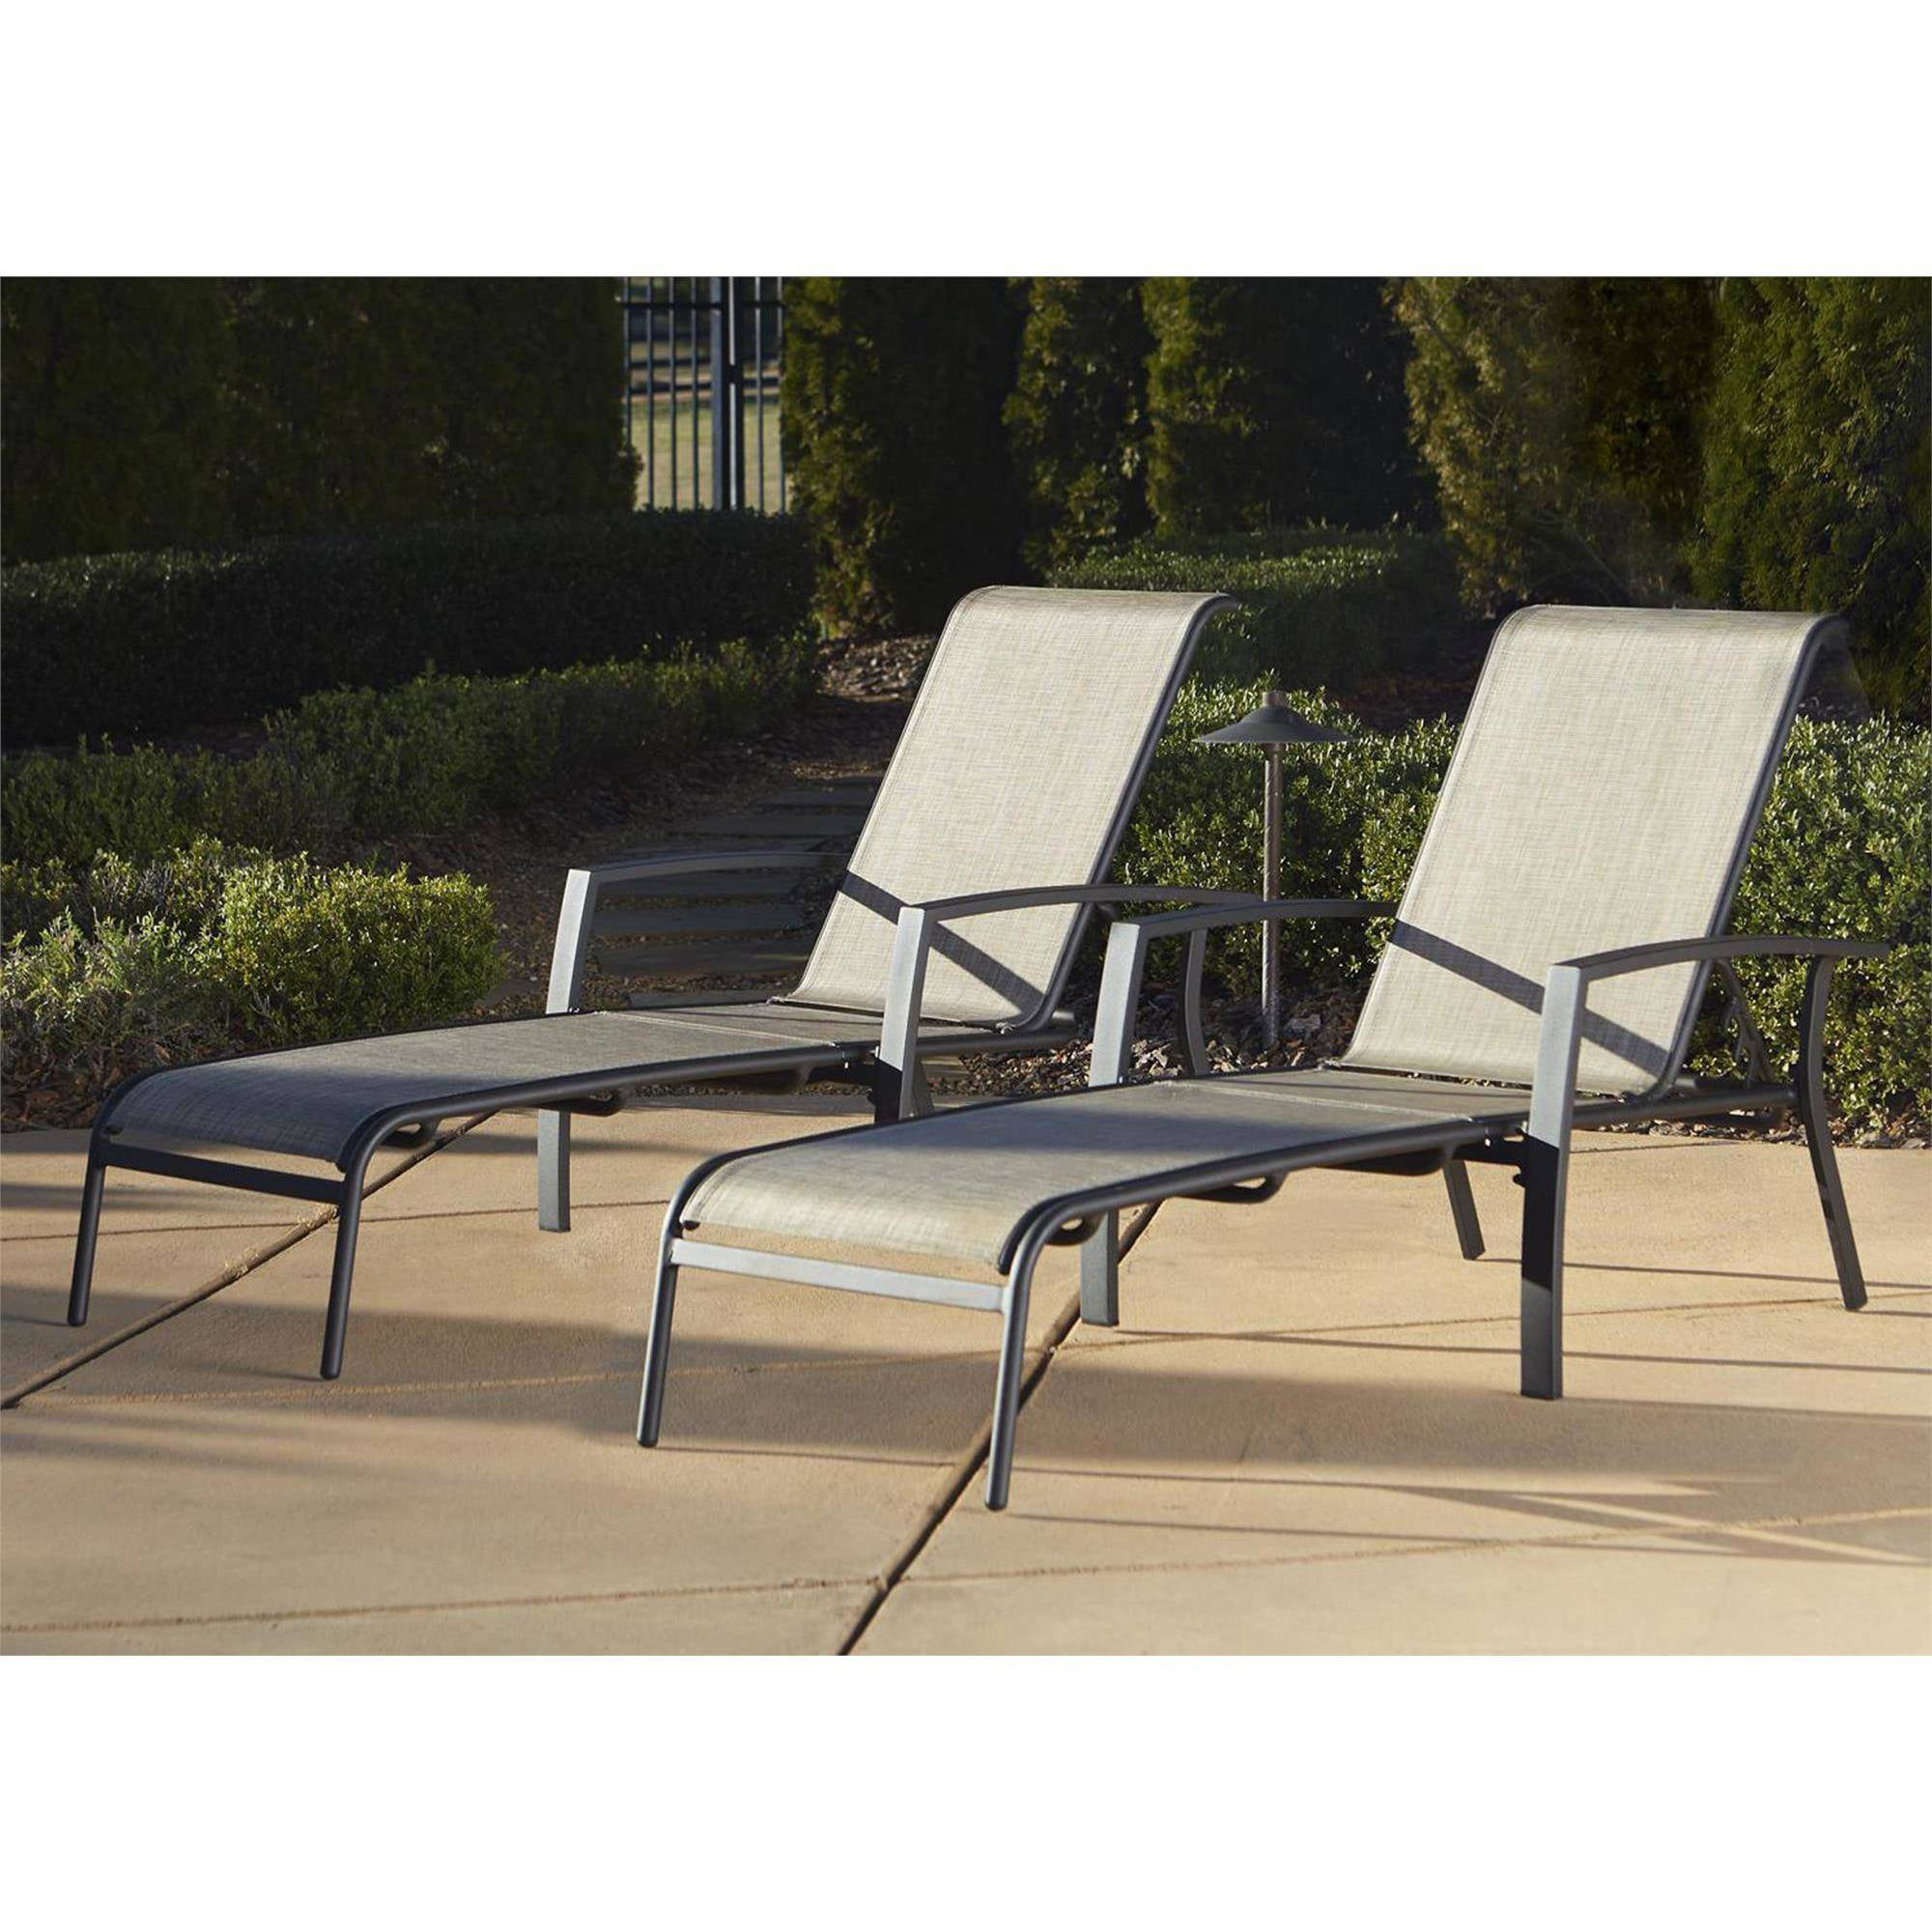 Cosco Outdoor Adjustable Aluminum Chaise Lounge Chair Serene Ridge Set, 2  Pack, Dark Brown   Walmart.com